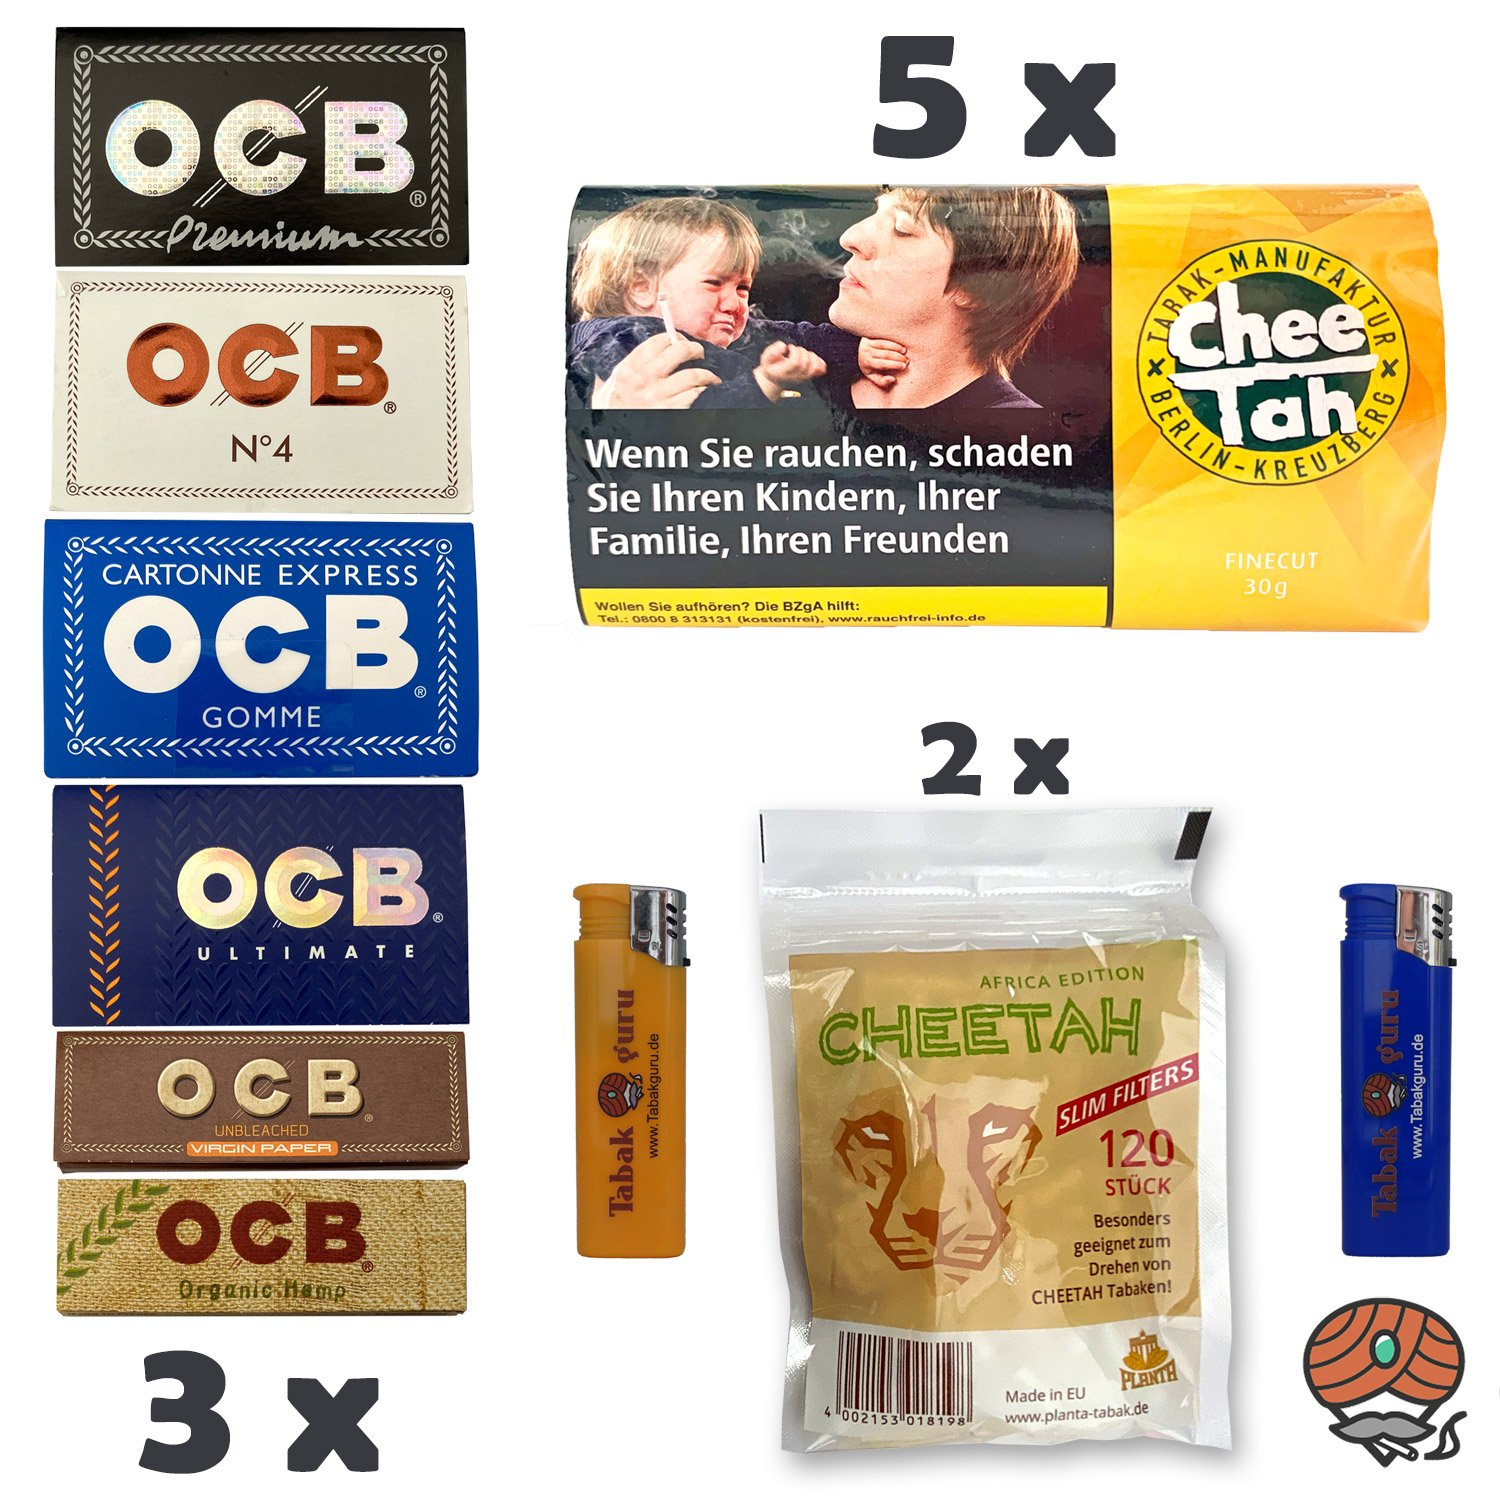 5 x Chee Tah Gelb Virginia Blend Drehtabak Pouch, 3 x OCB Papers, 2 x Slim Filter